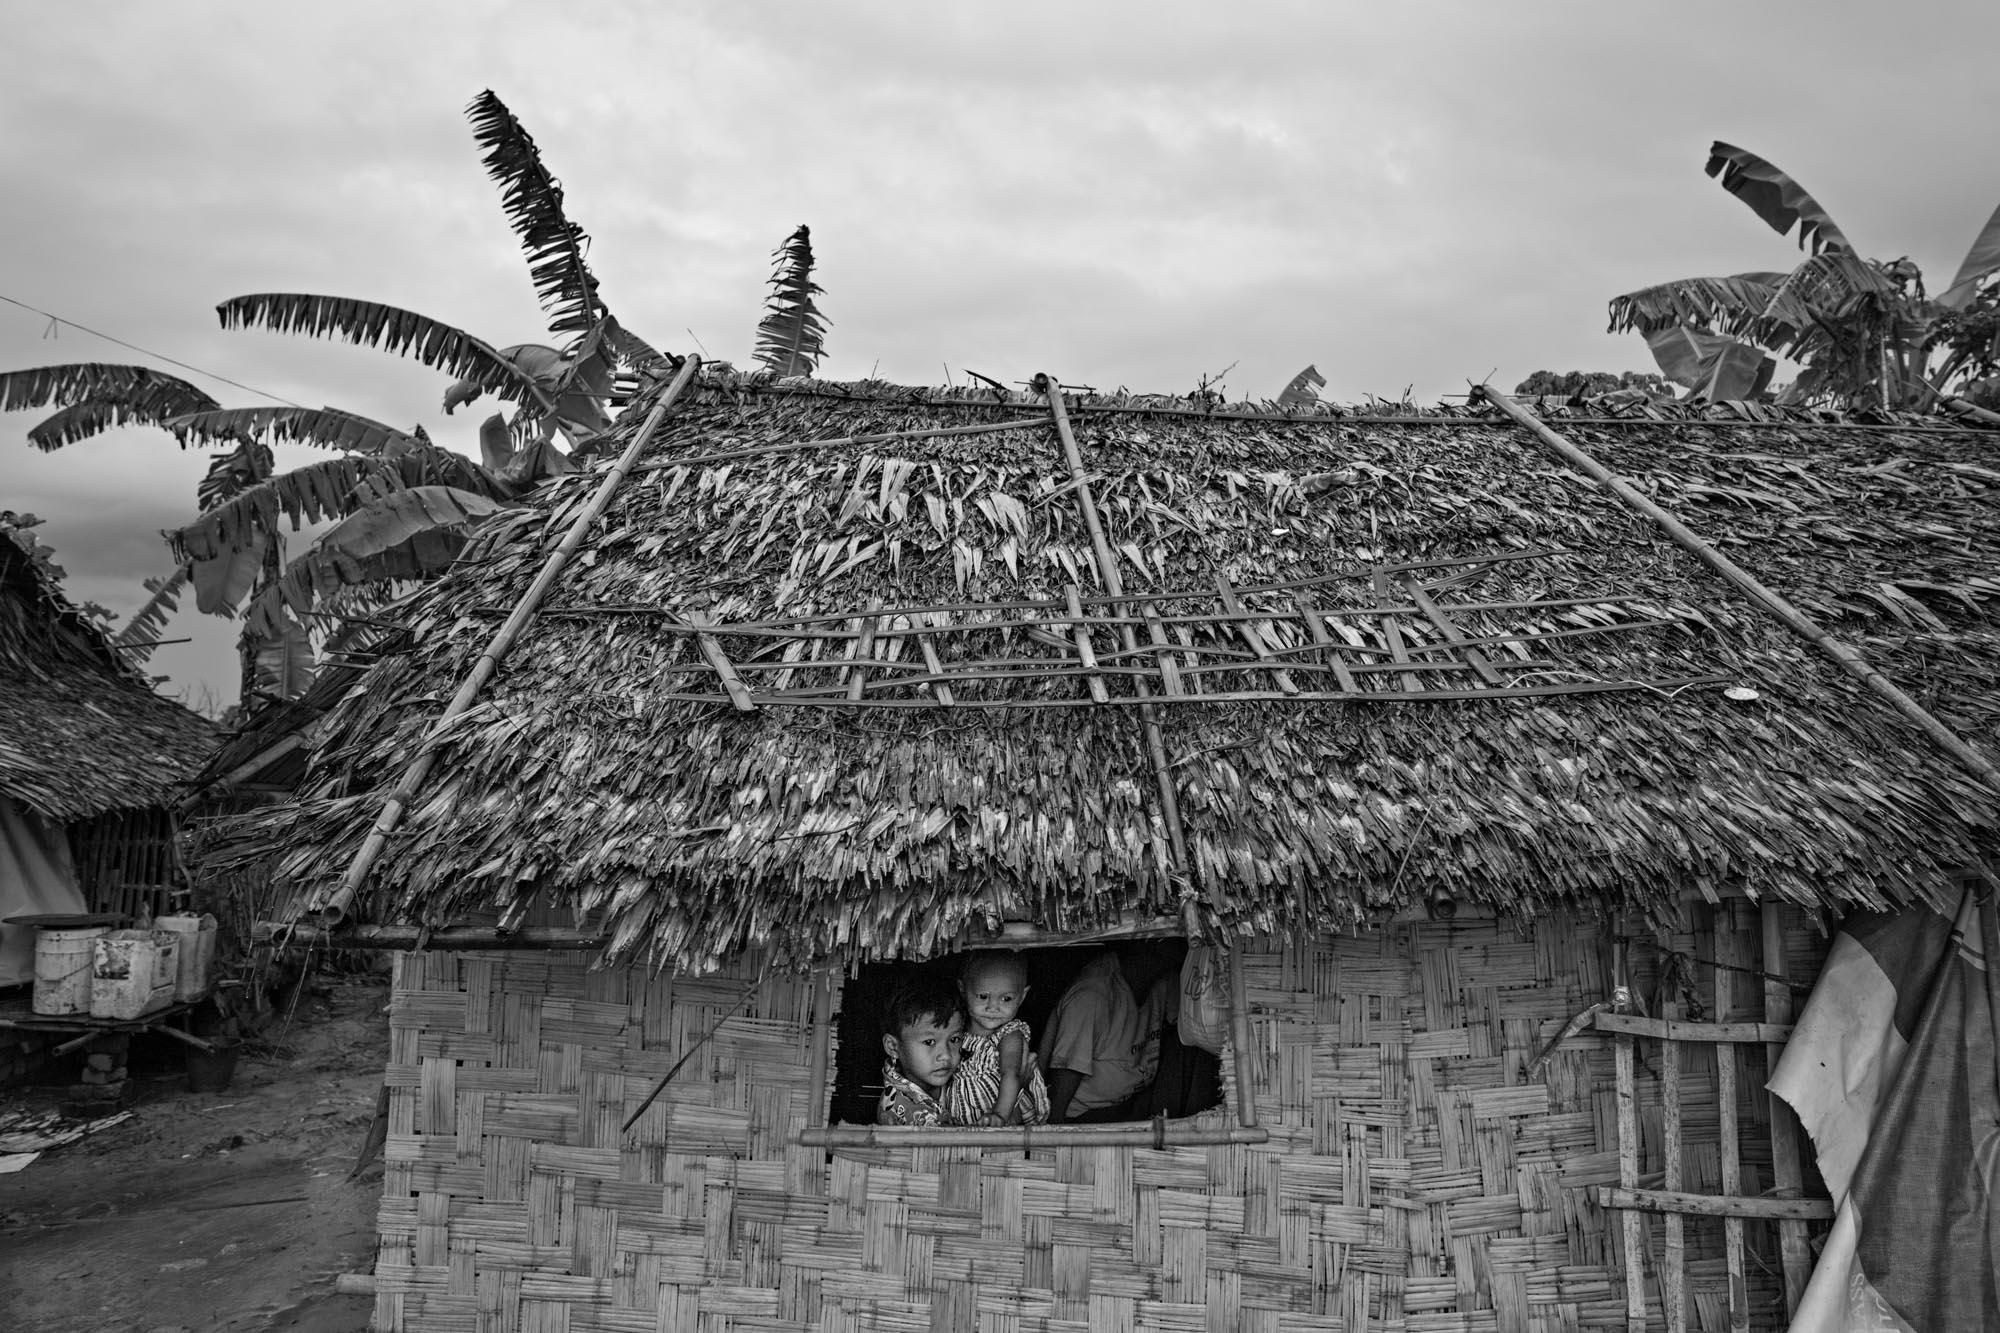 Saung Ning Wai holds her baby sister, Sandar Lin, as they look out of their hut on a rainy day.